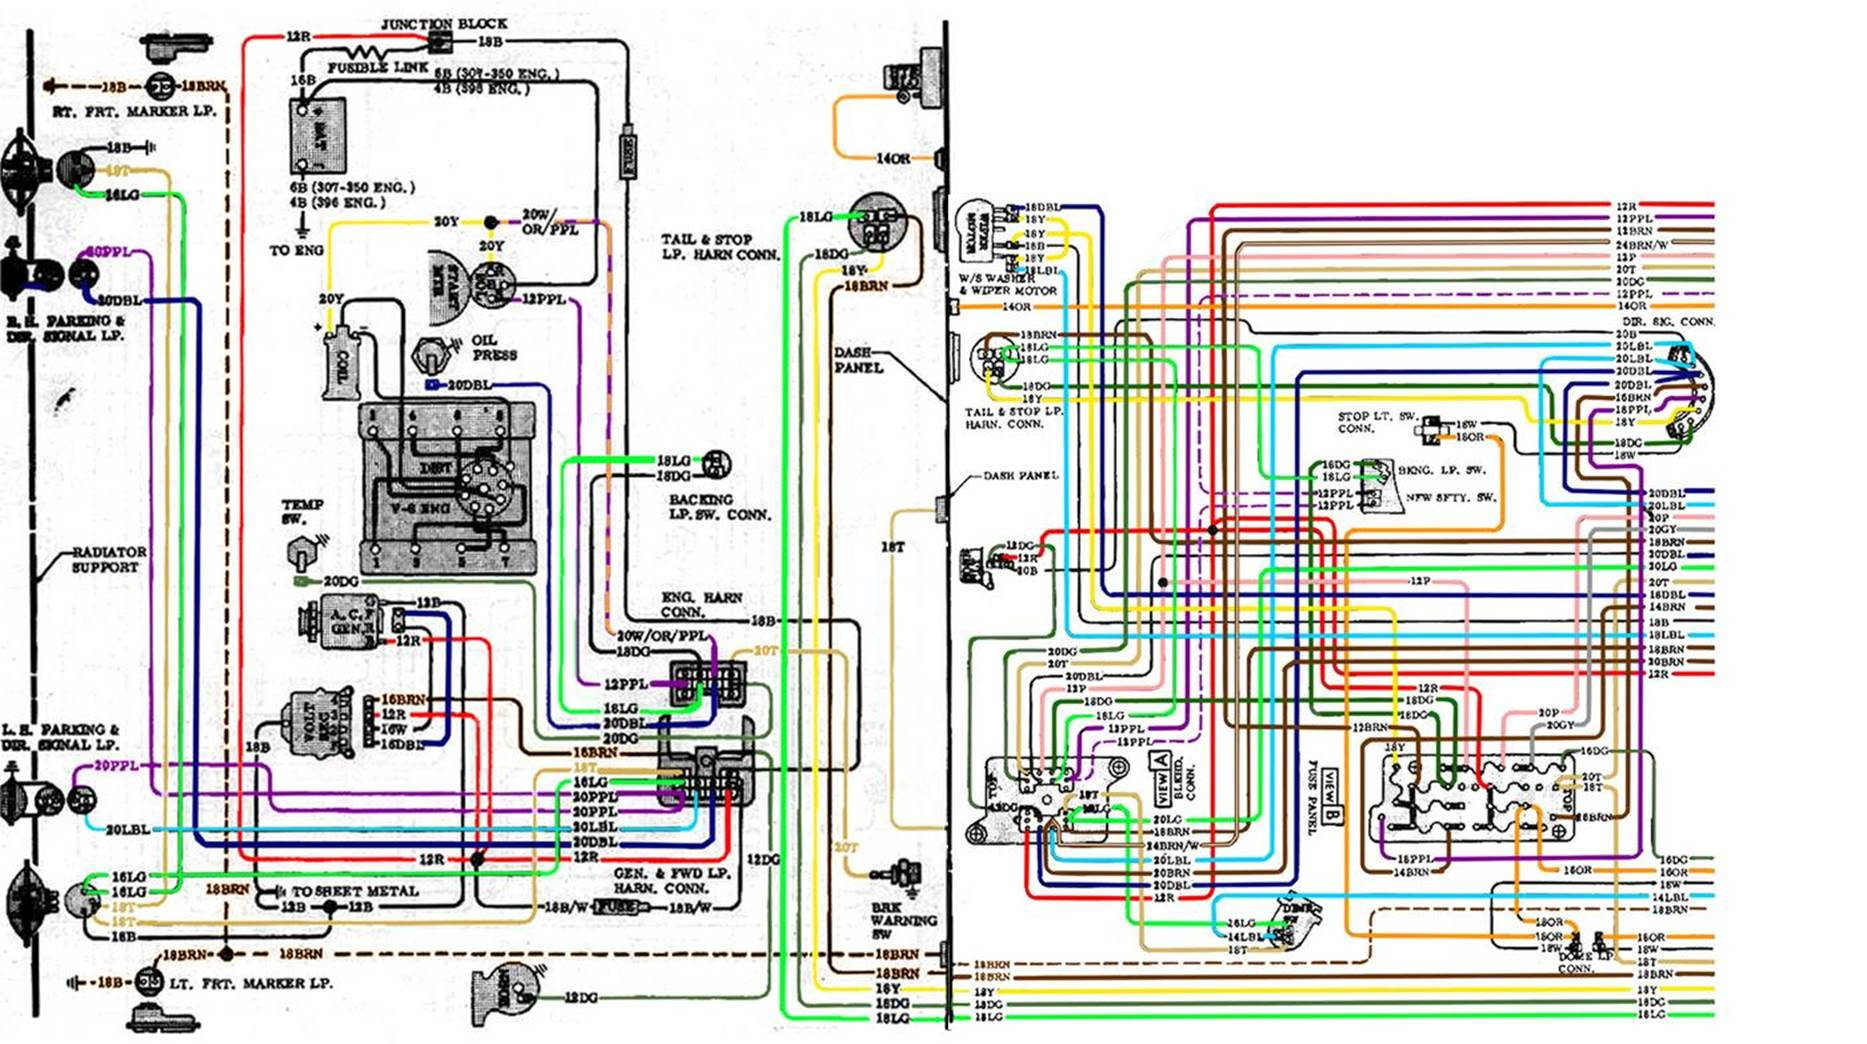 image002 67 72 chevy wiring diagram 1971 chevy truck wiring diagram at mifinder.co